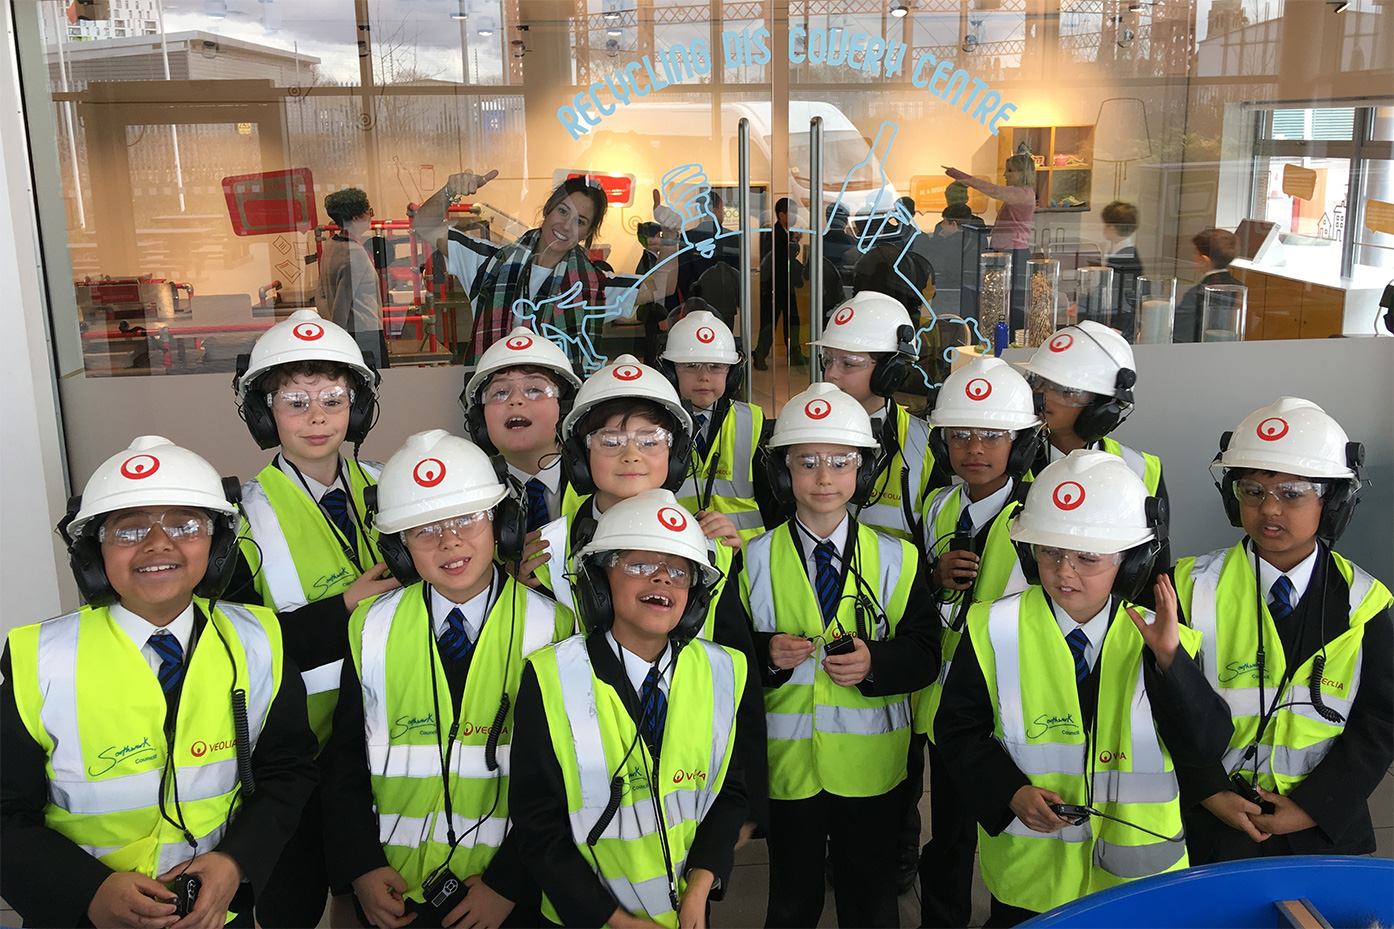 Year 4 trip to Europe's most advanced recycling centre